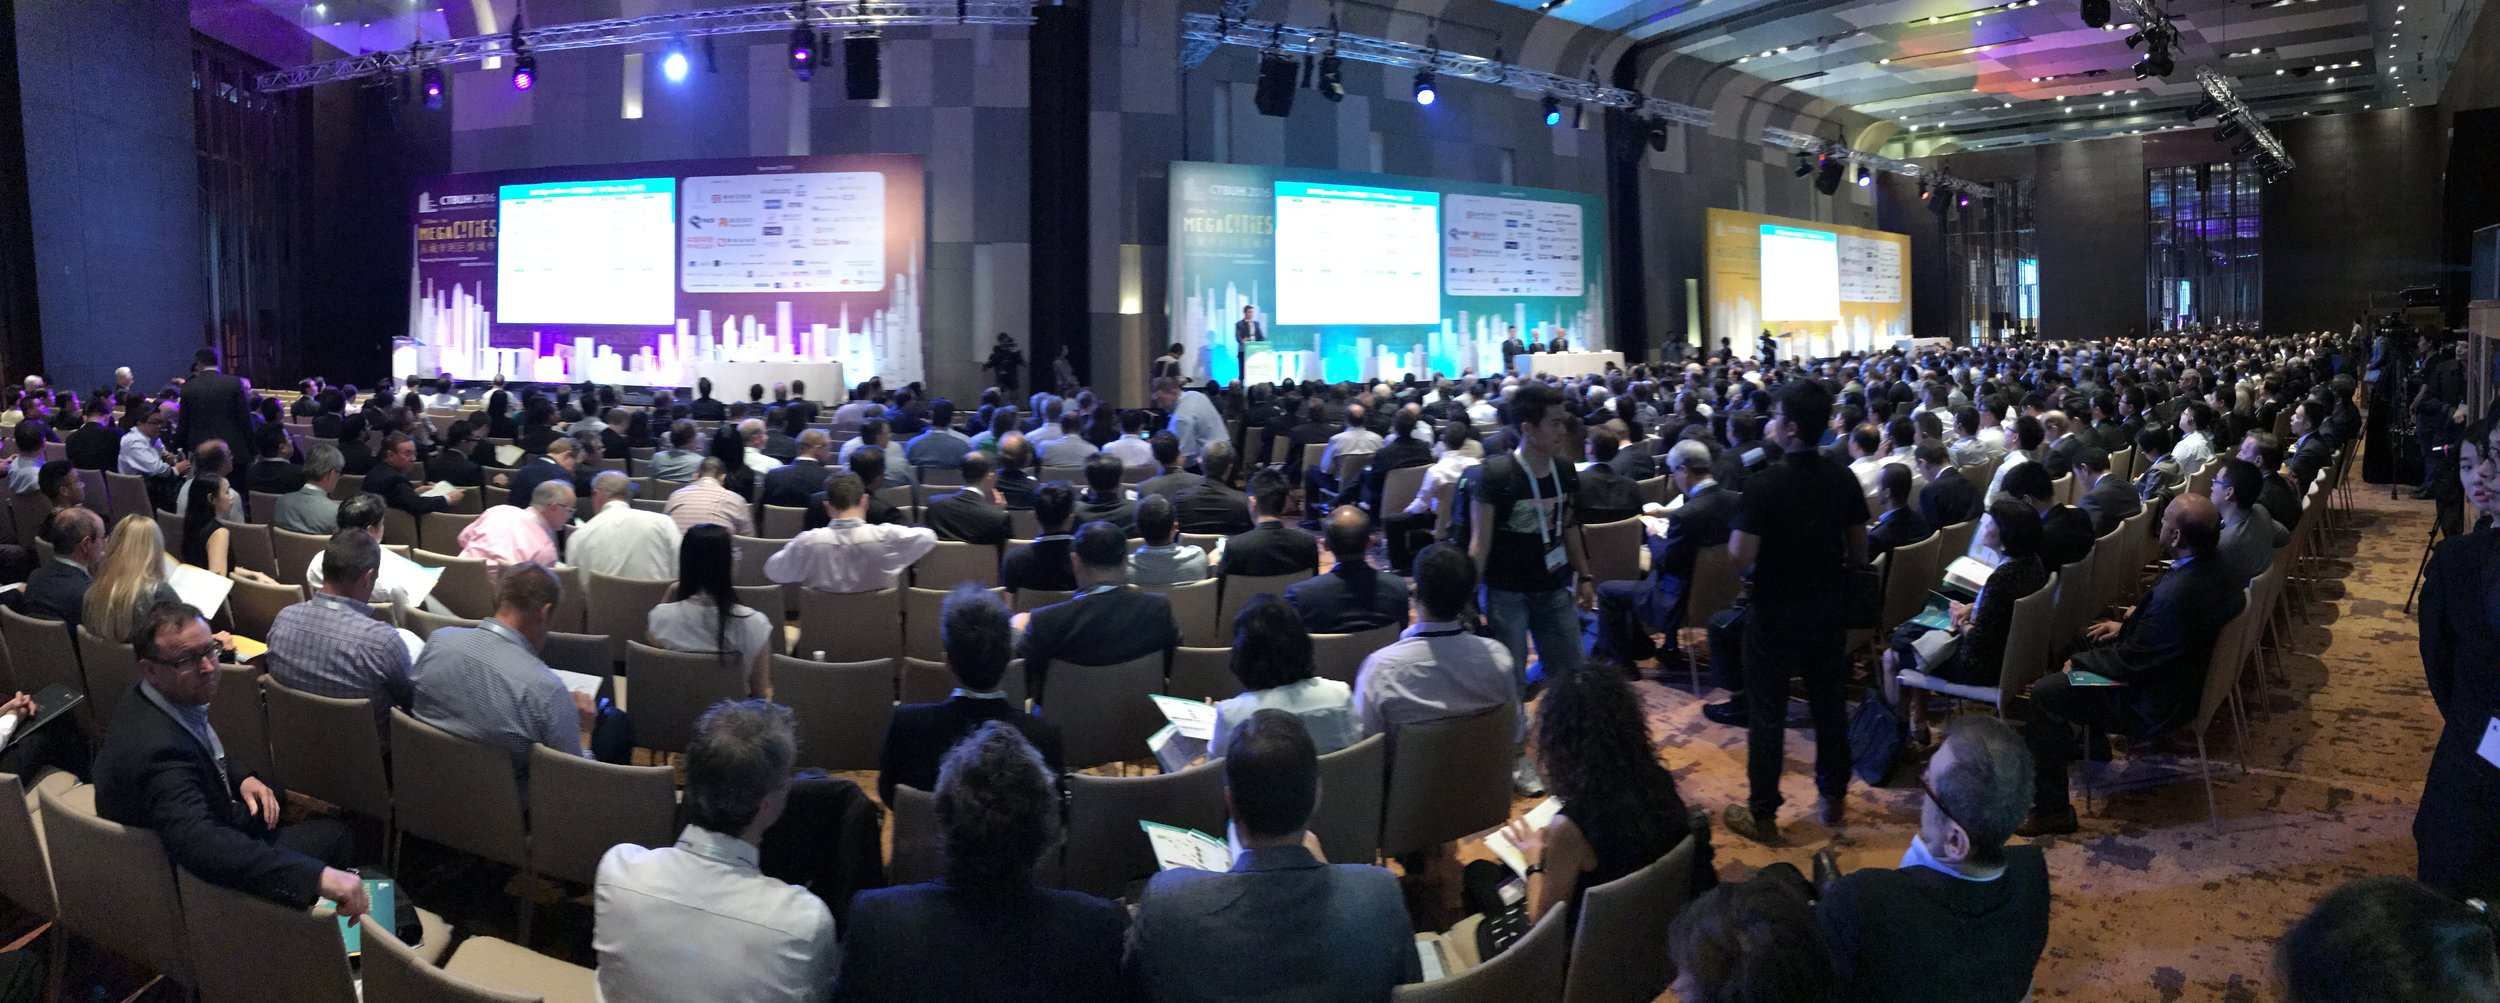 CTBUH 2016 Conference. Cities to Megacities: Shaping Dense Vertical Urbanism.    Link to  CTBUH2016.com for more conference information